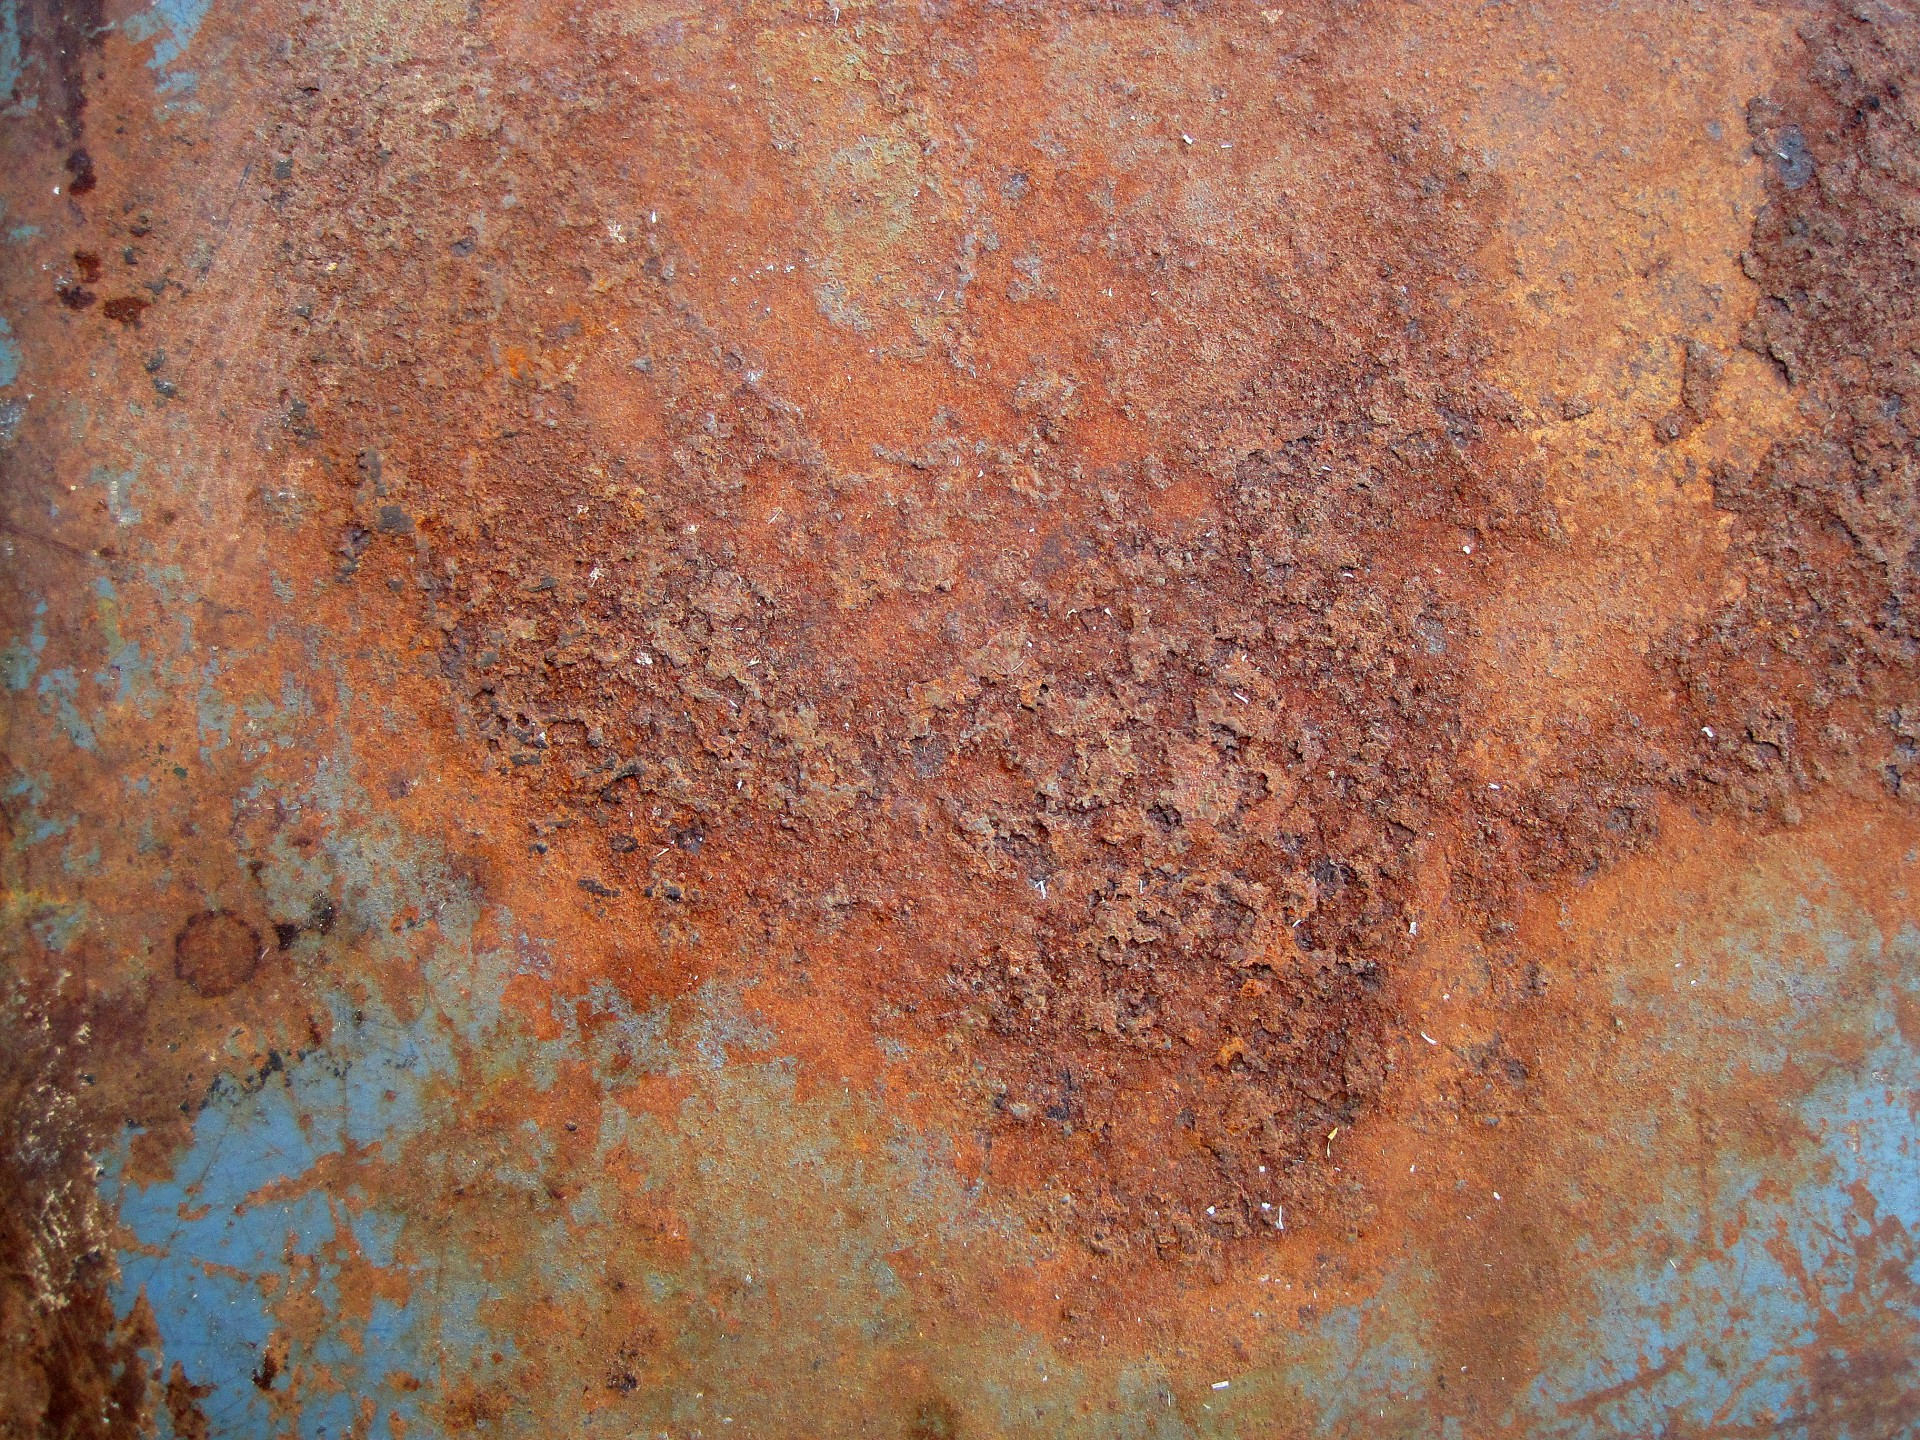 Spreading Rust Free Stock Photo - Public Domain Pictures